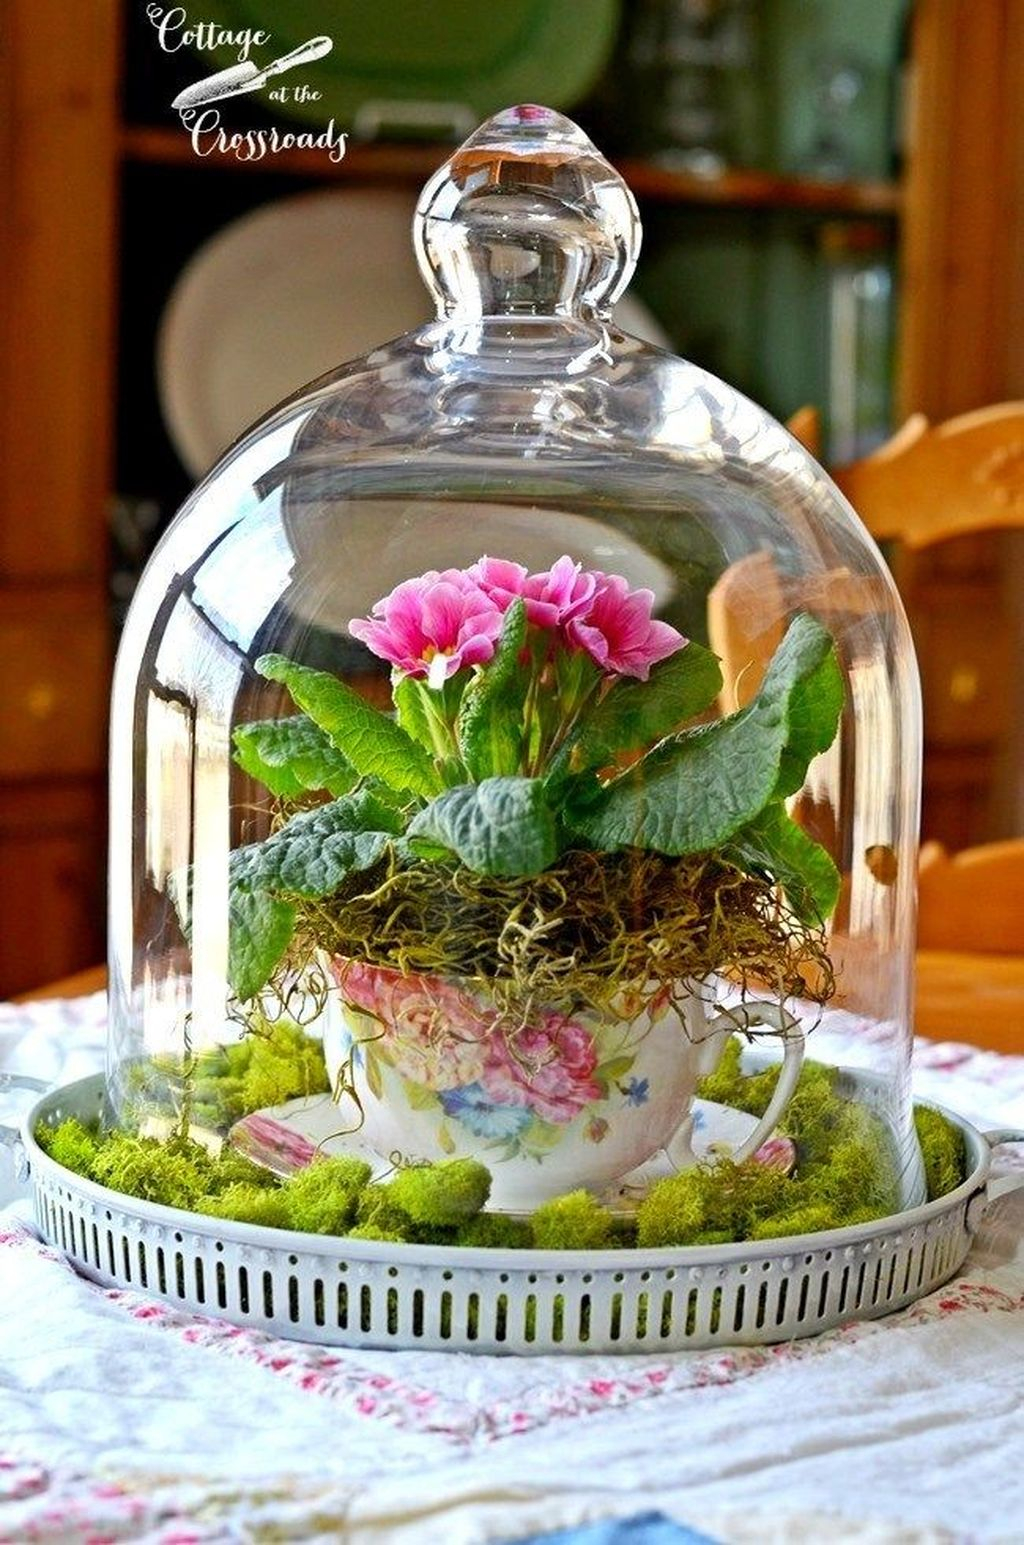 Inspiring Diy Teacup Mini Garden Ideas To Add Bliss To Your Home 32